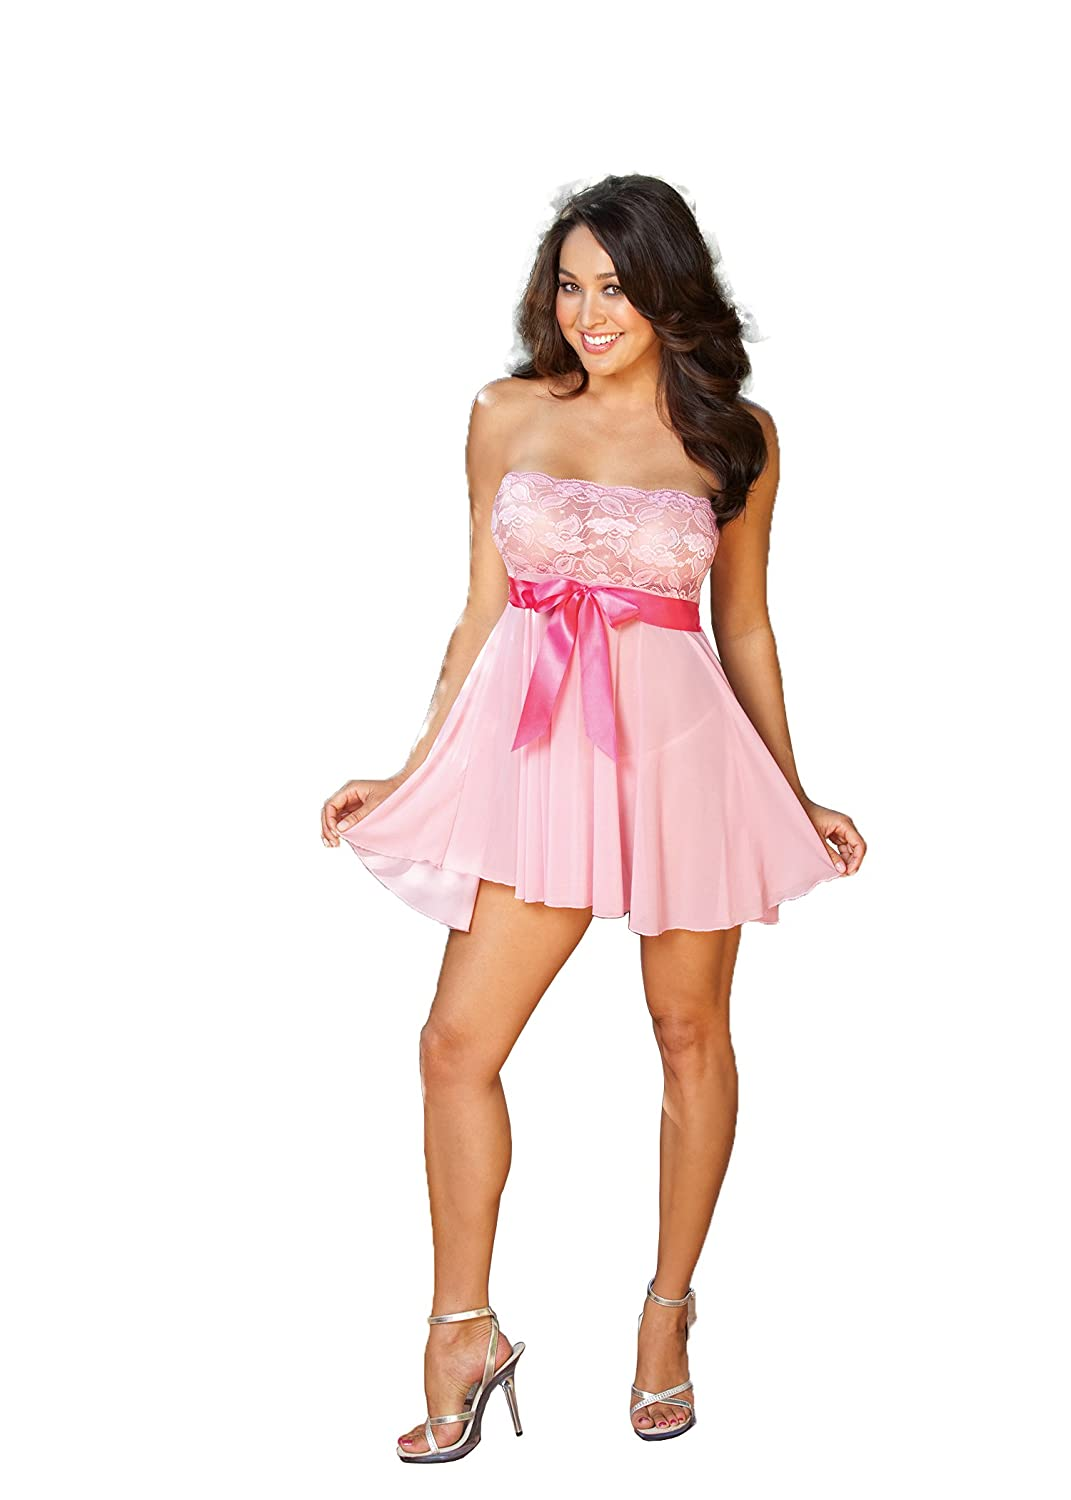 Shirley of Hollywood Women's Elegant Strapless Bow Trimmed Babydoll Pink One Size 96273